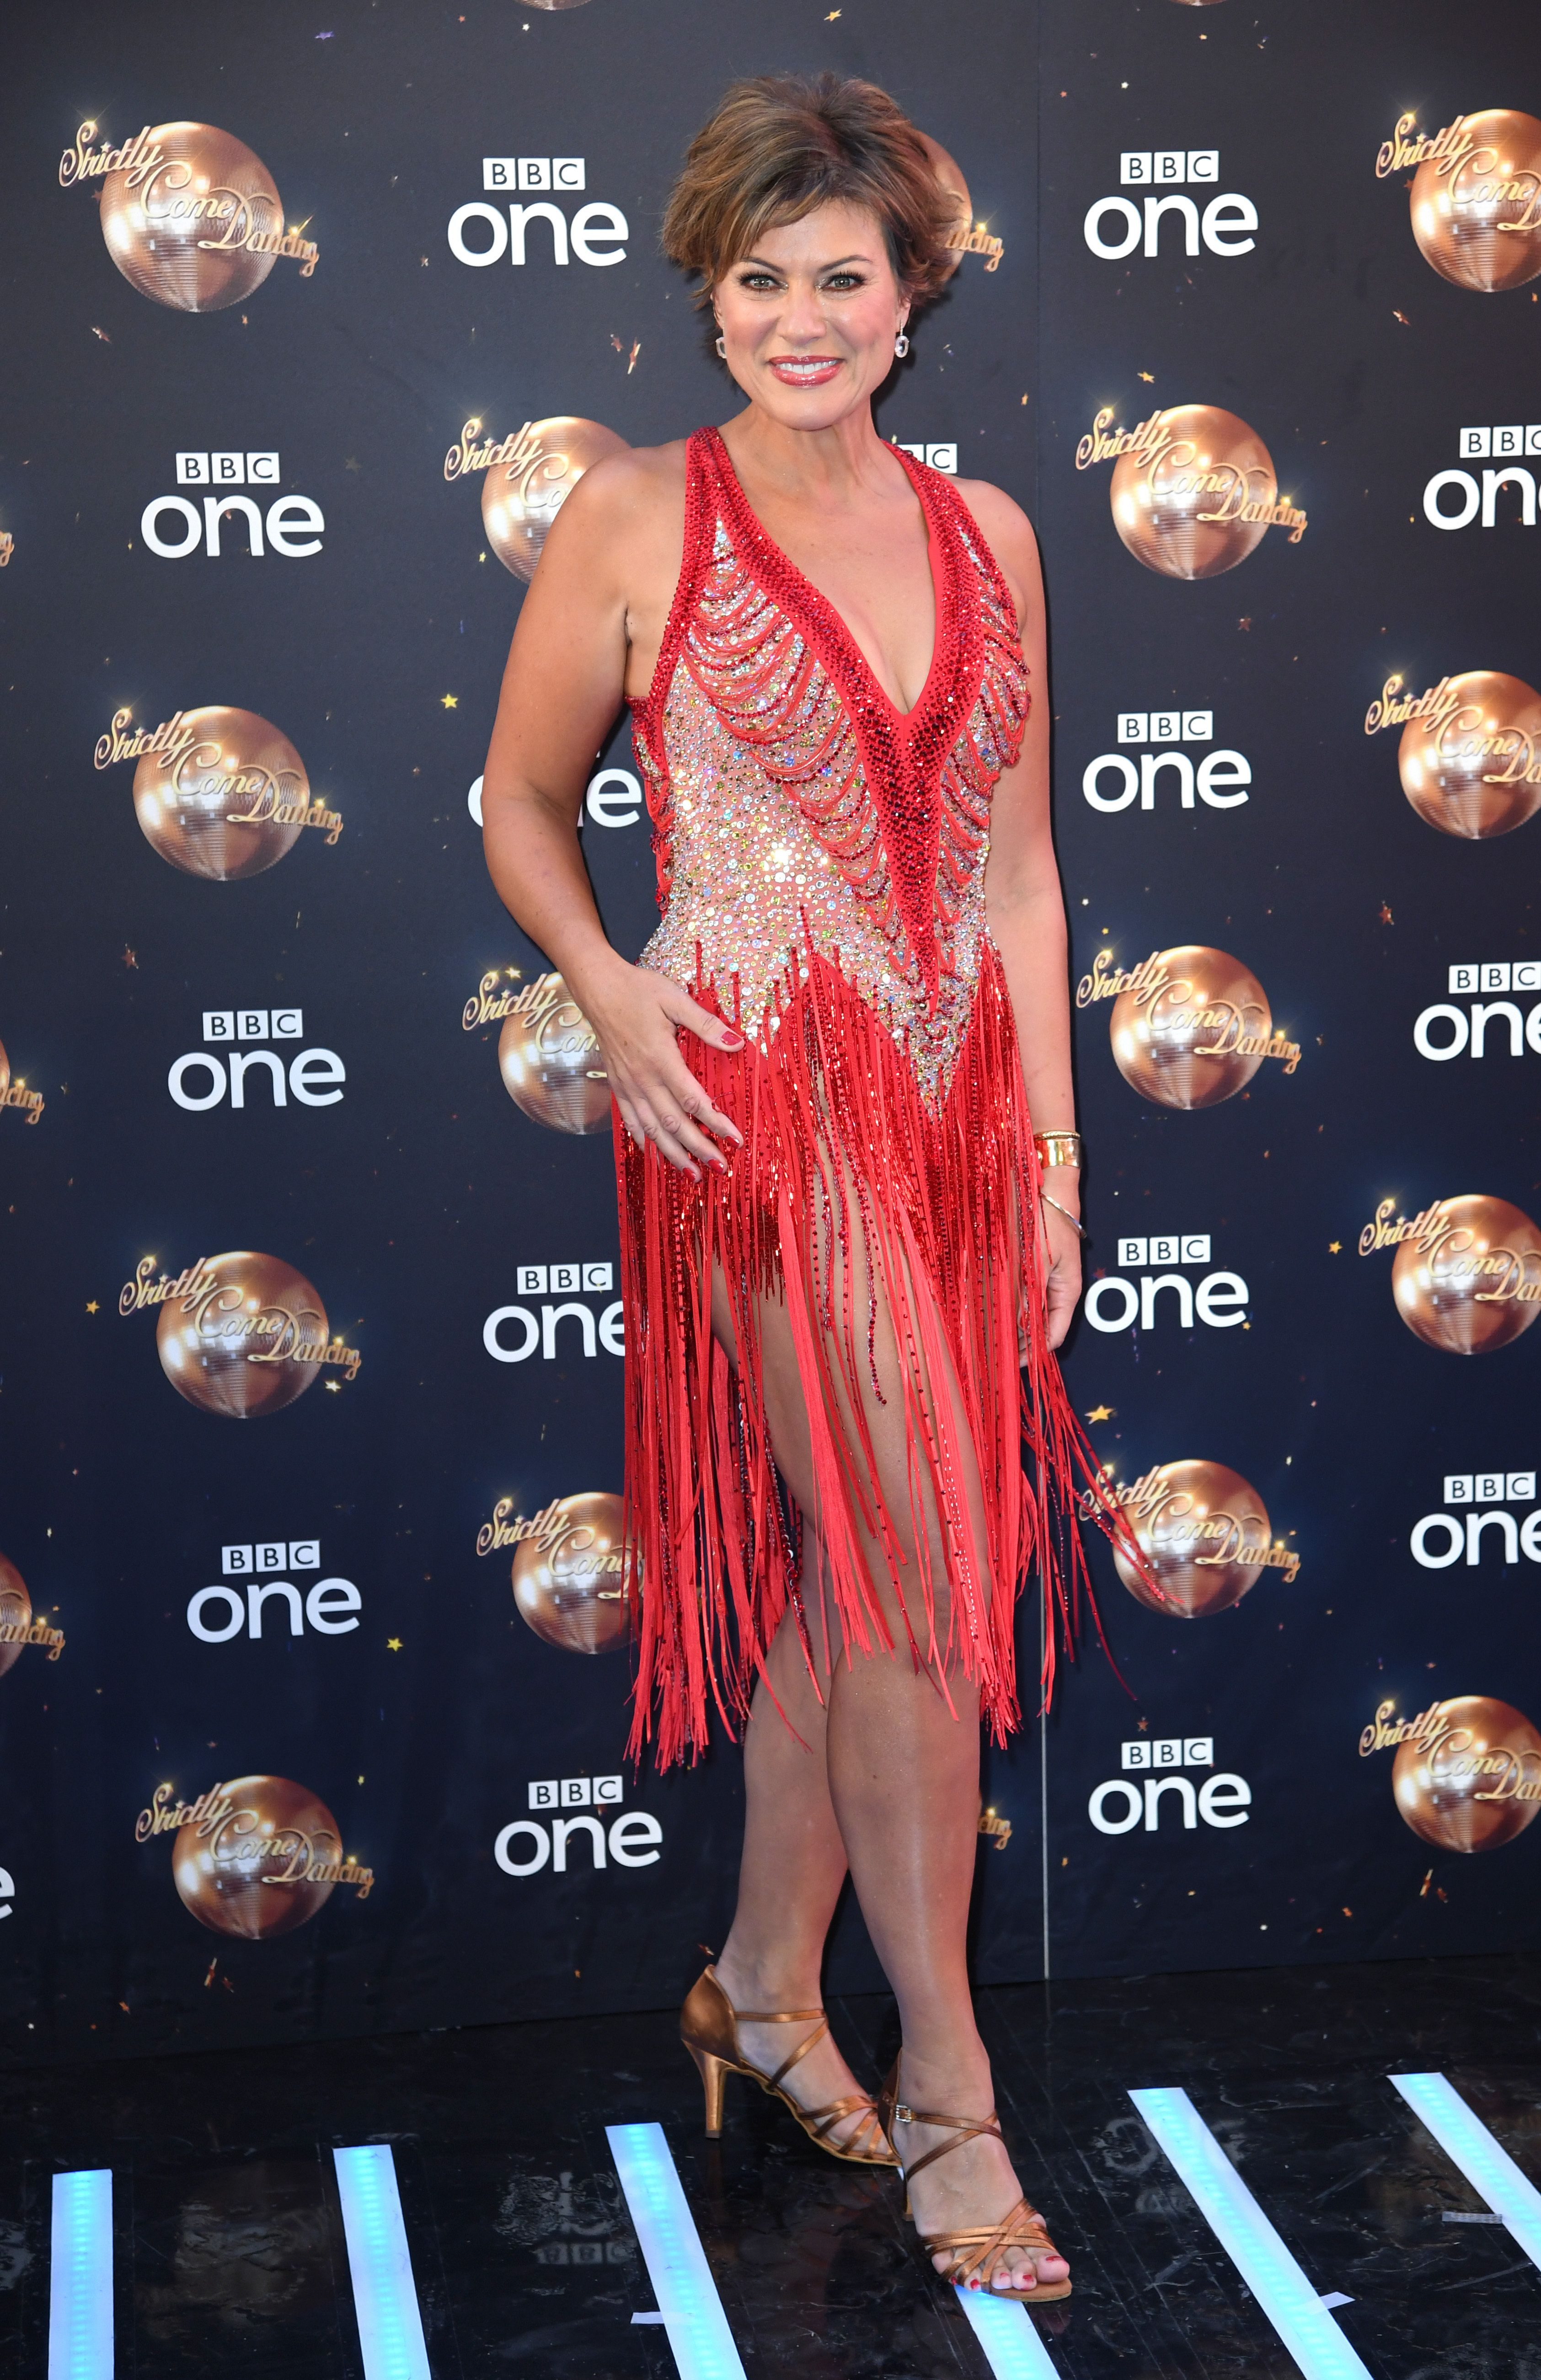 Kate Silverton Hits Back At Claims She Is 'Ditching' Kids To Appear On 'Strictly Come